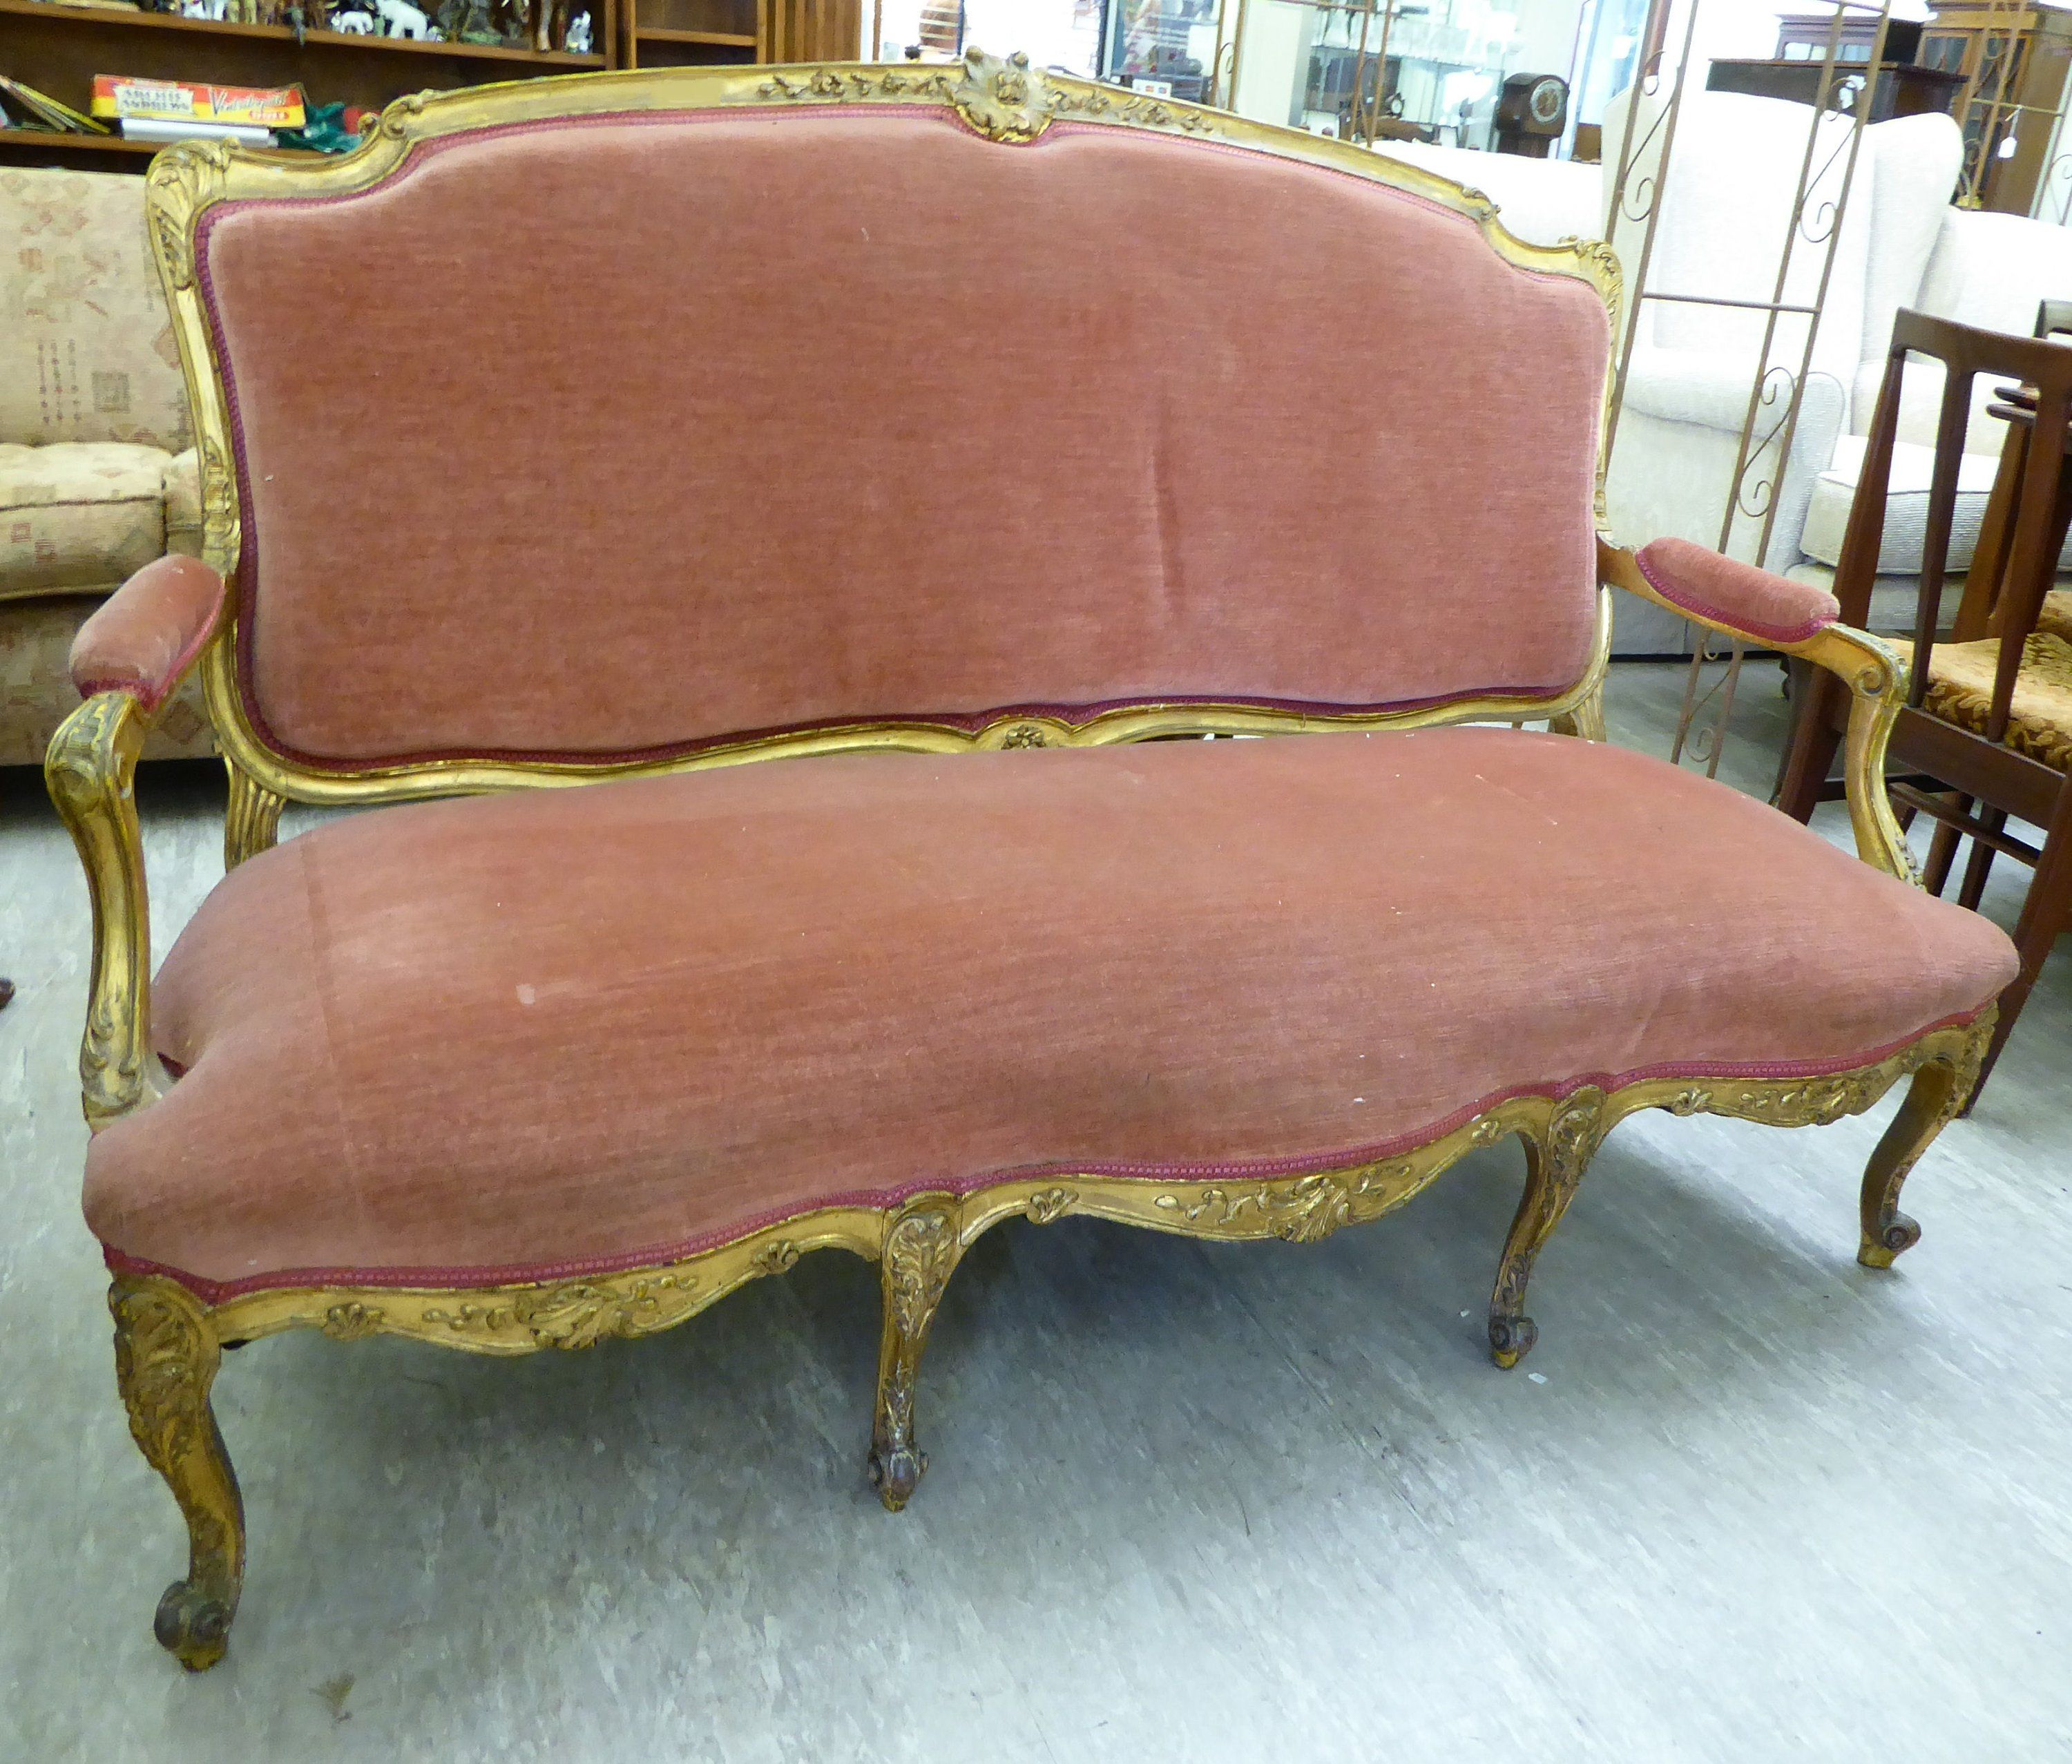 Admirable French Antique Louis Xv Style Upholstered Carved Gilt Salon Machost Co Dining Chair Design Ideas Machostcouk